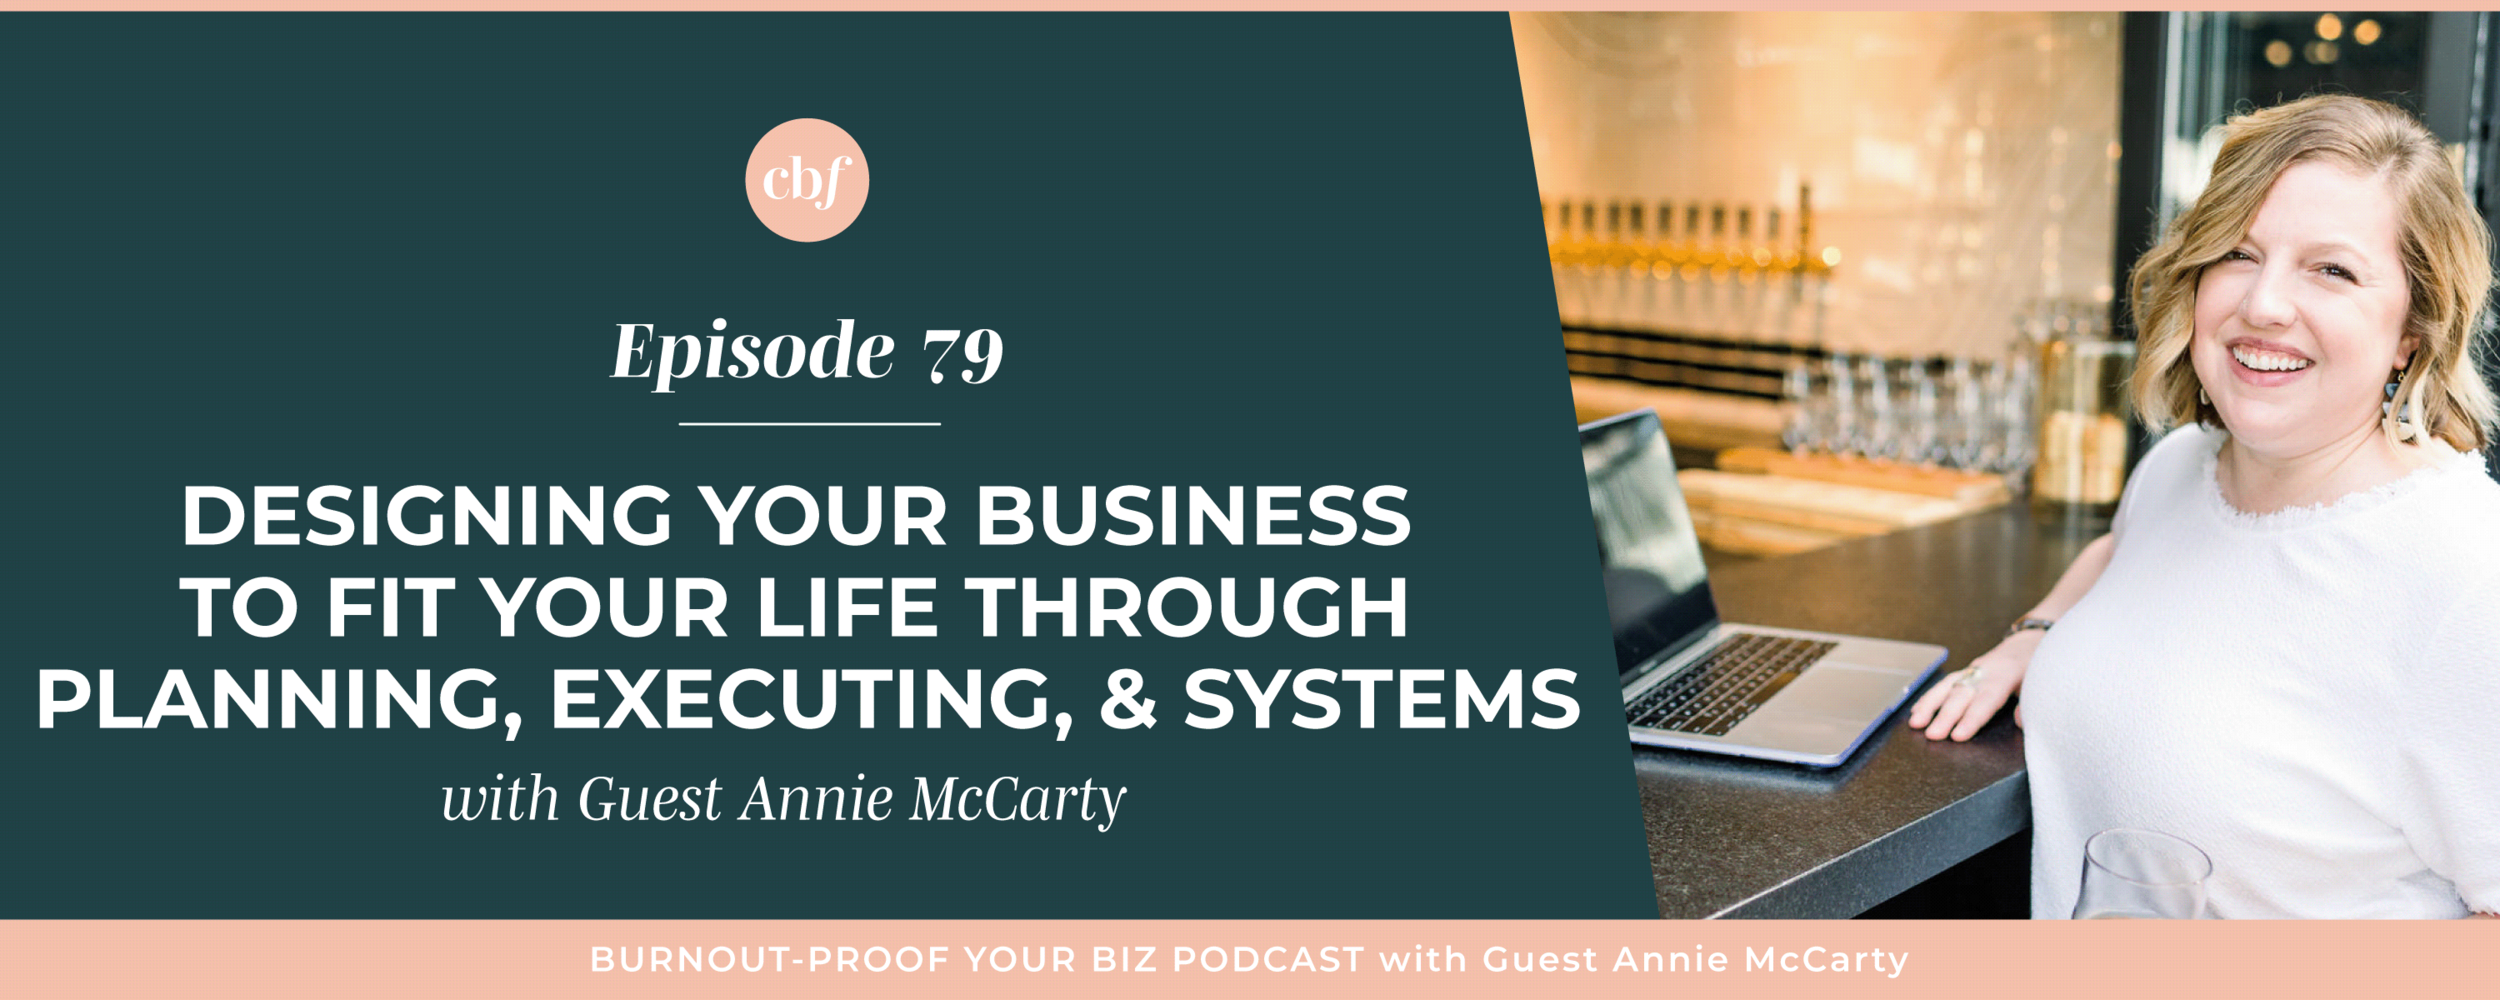 Burnout-Proof Your Biz Podcast with Chelsea B Foster | Episode 079 - Designing your business to fit your life through planning, executing, and systems with guest Annie McCarty | Learn how to run your biz and live your dream life on your own terms without the fear of burnout.  ||  burnout-proof your business podcast | workflow & productivity specialist | planning when paired with execution | the best systems for staying organized and planning for the future of your business | entreprenurial women who podcast | balancing work & play as a solopreneur | how to stay efficient in your business | defining success on your own terms | annie mccarty    preventing burnout in your business, what to do when you're overwhelmed, tips for getting through burnout, what to know before starting an online business, tips on being a successful solopreneur, asana workflow systems, the best ways to utilize asana, what to know before becoming your own boss, planning for success as an entrepreneur, multi-passionate creative, honoring yourself, business tips for multi-passionate creatives, chelsea b foster, women who podcast, female podcaster, doing the work, mindfulness